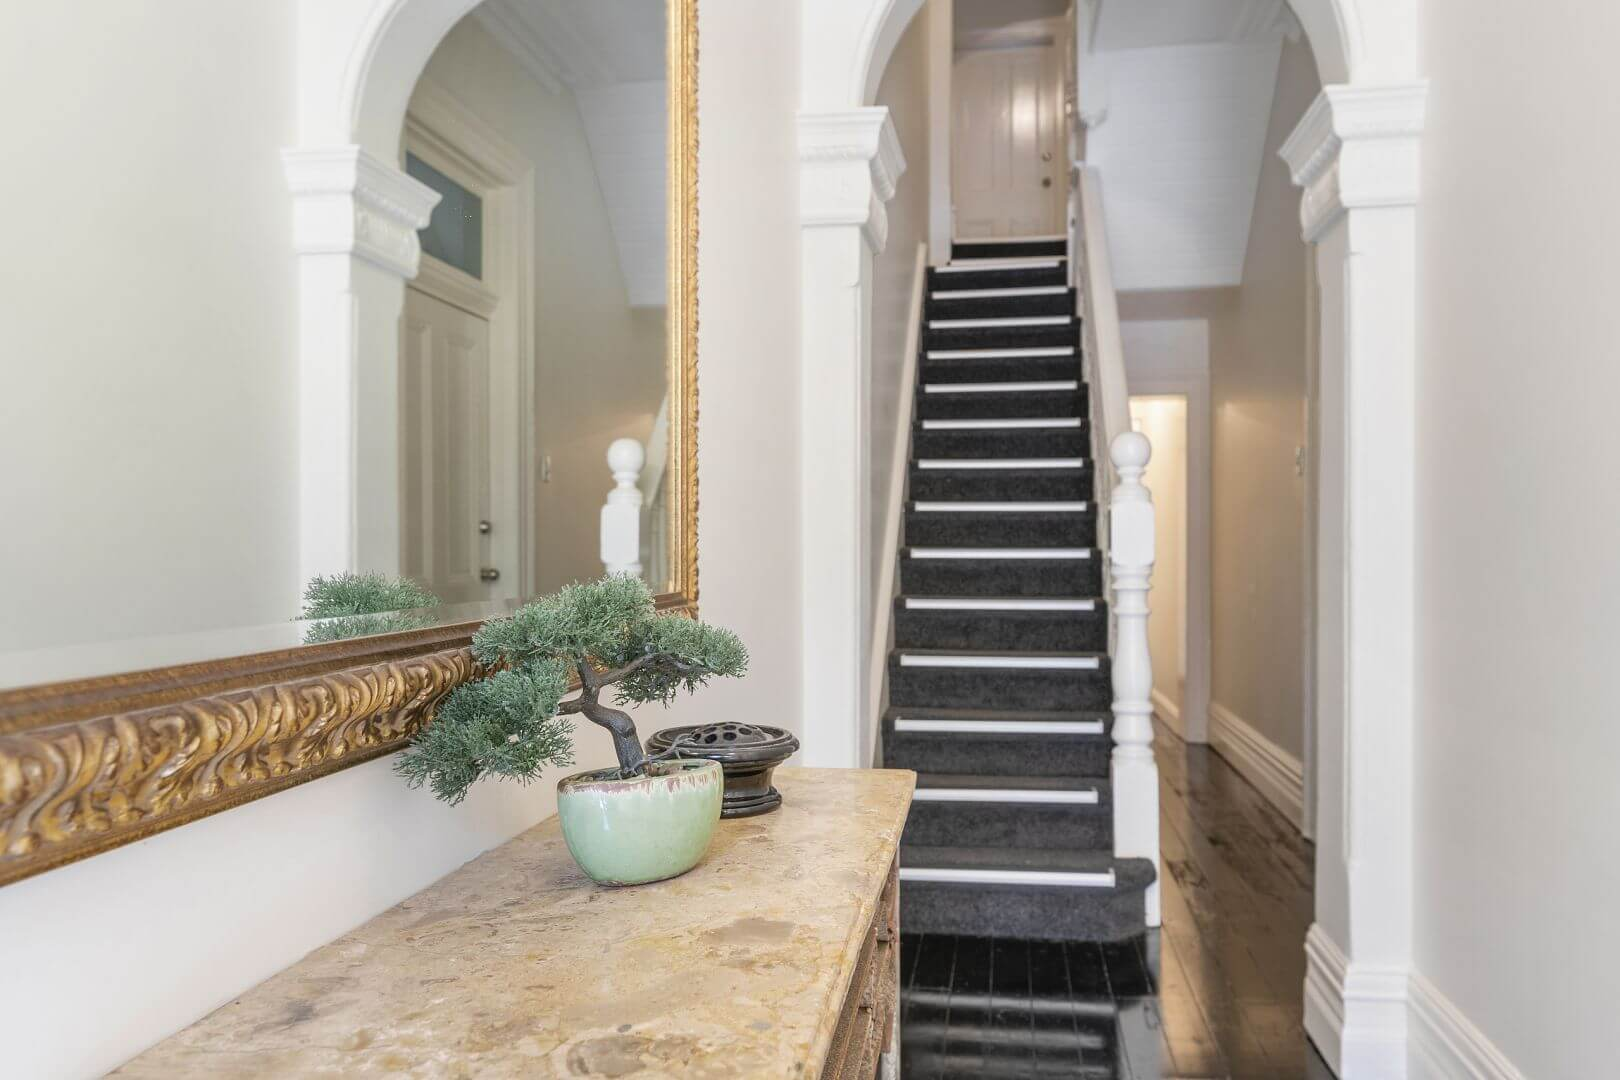 3/64 Hereford Street - Staircase